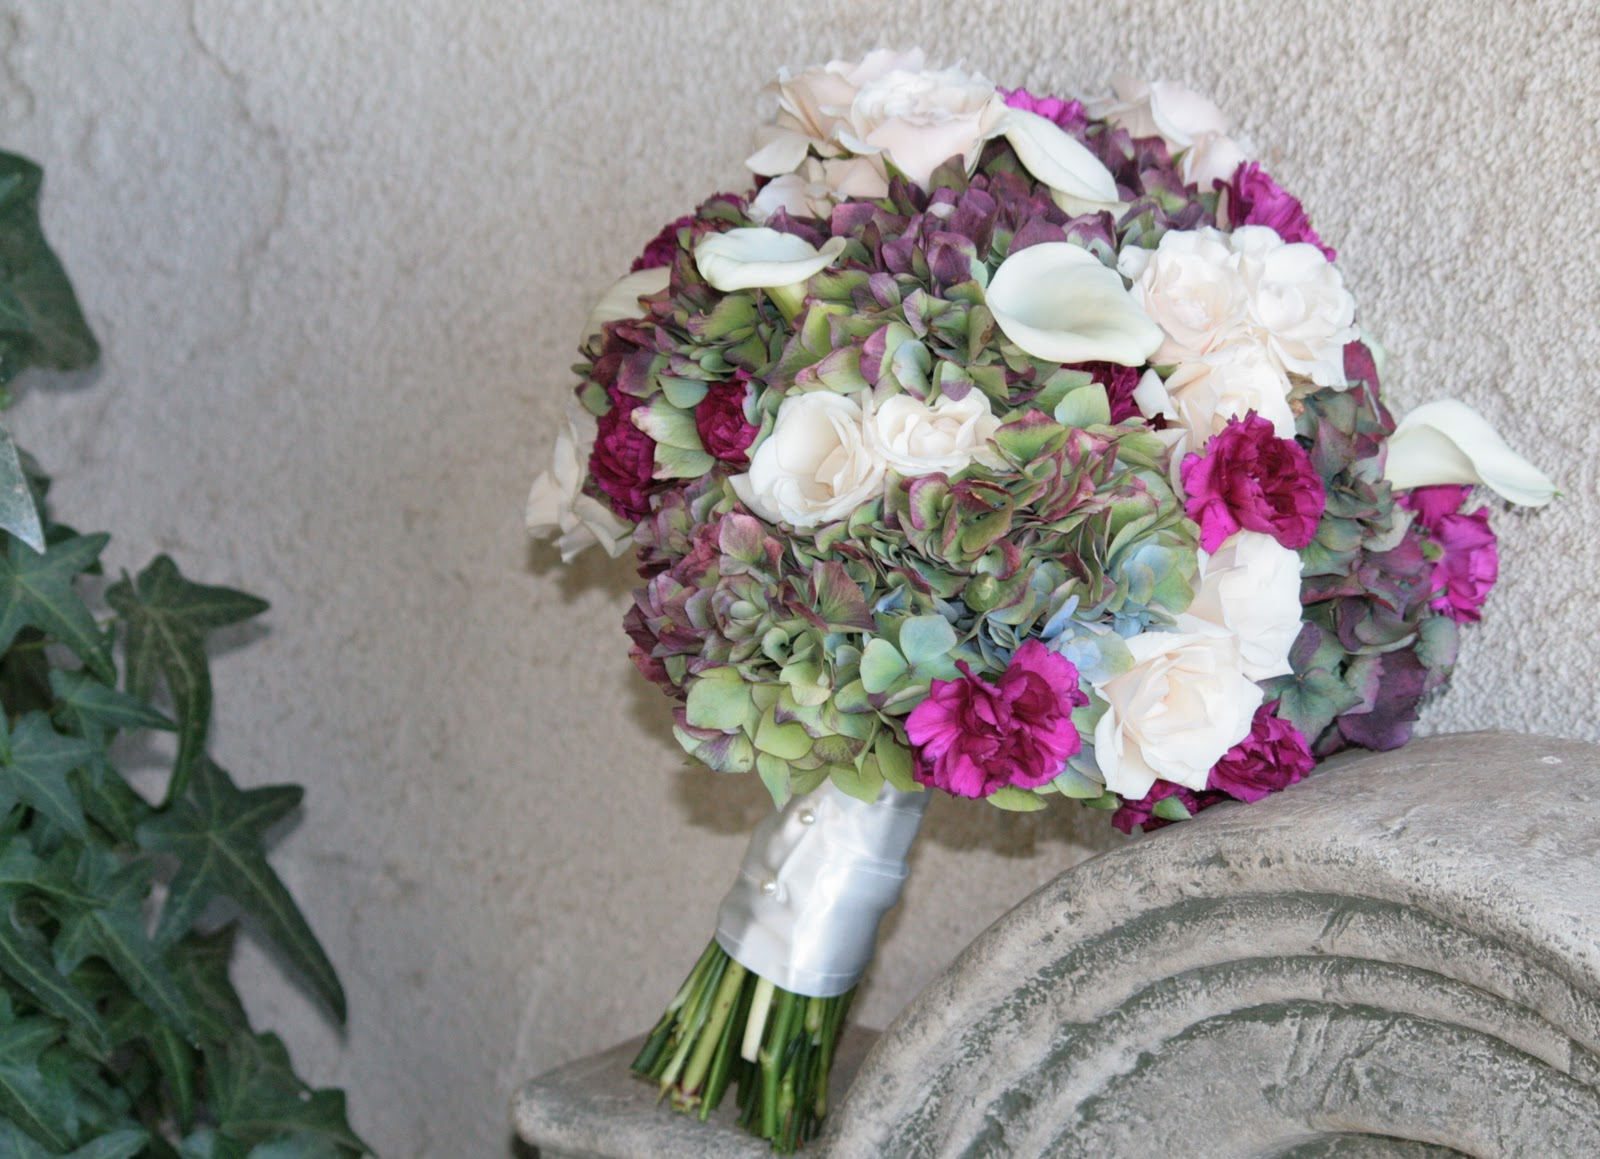 Sarah Chose Yummie Shades Of Gold Caramel And Chocolate With A Touch Sangria Merlot Sarahs Bouquet Was Filled Antique Hydrangeas